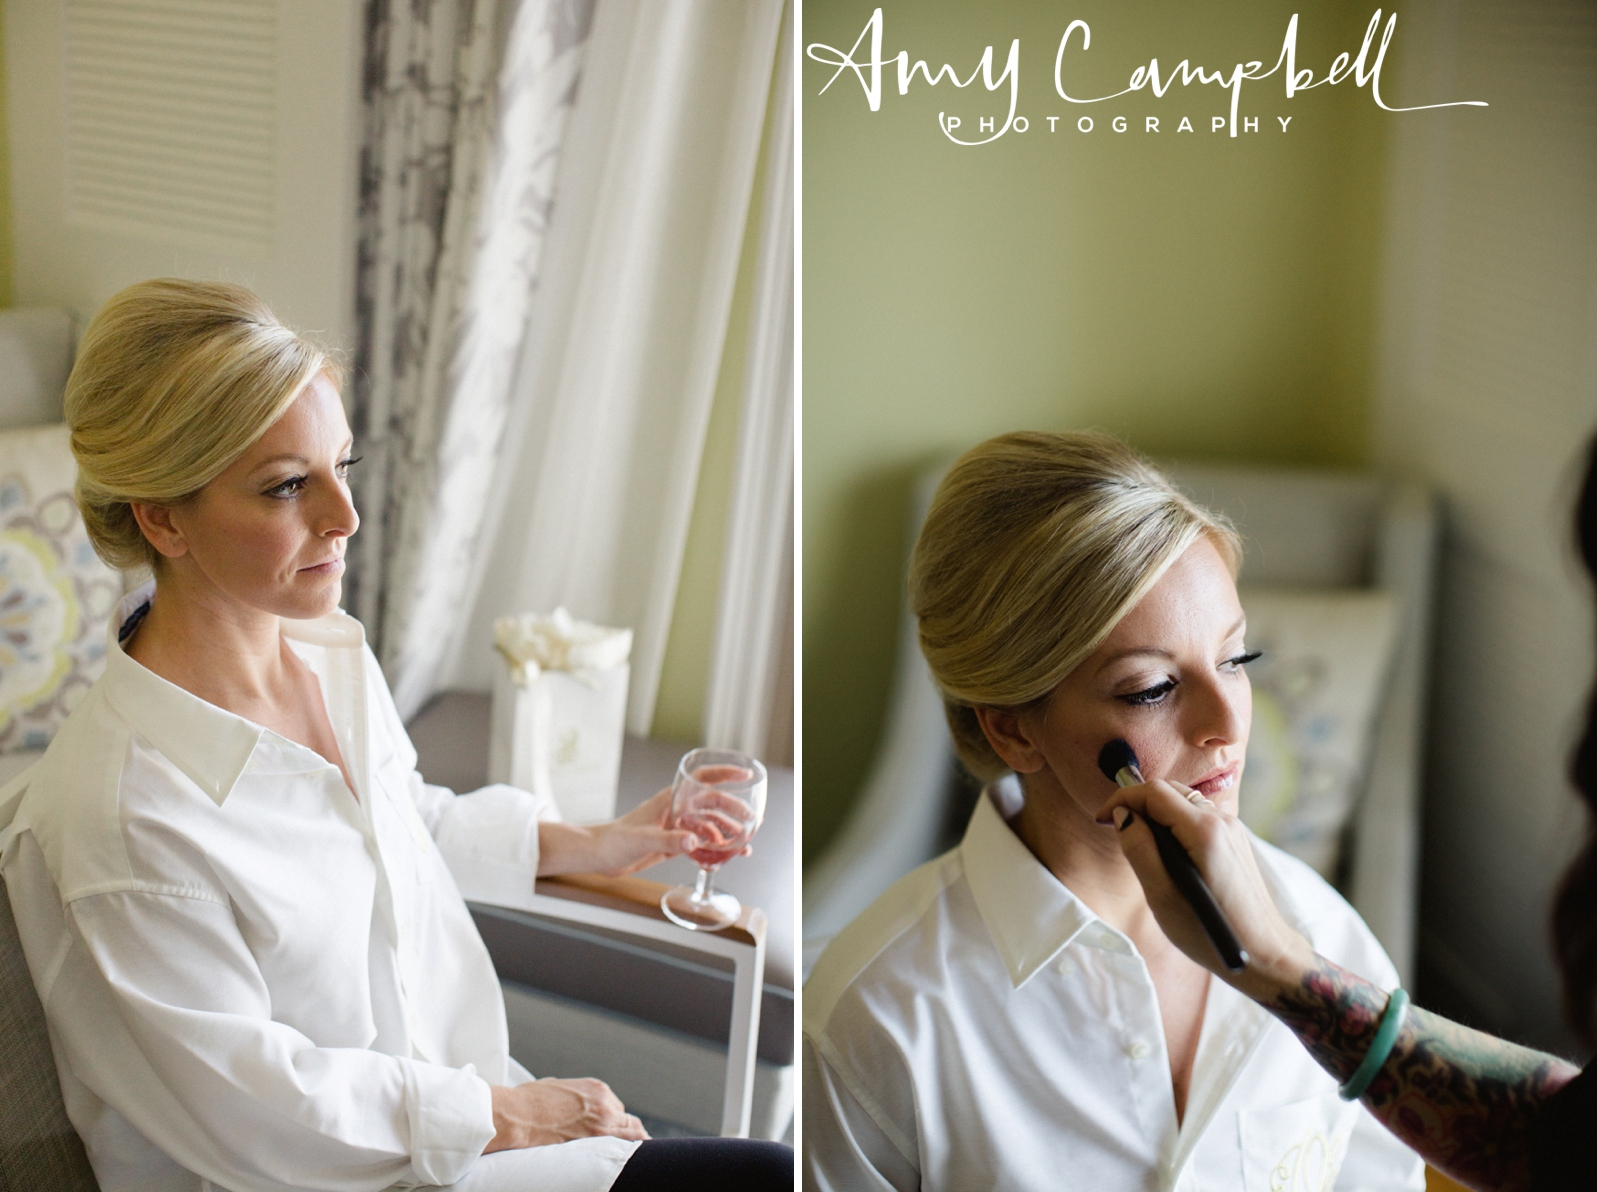 EricaandDexter_Wed_FB_AmyCampbellPhotography_0007.jpg